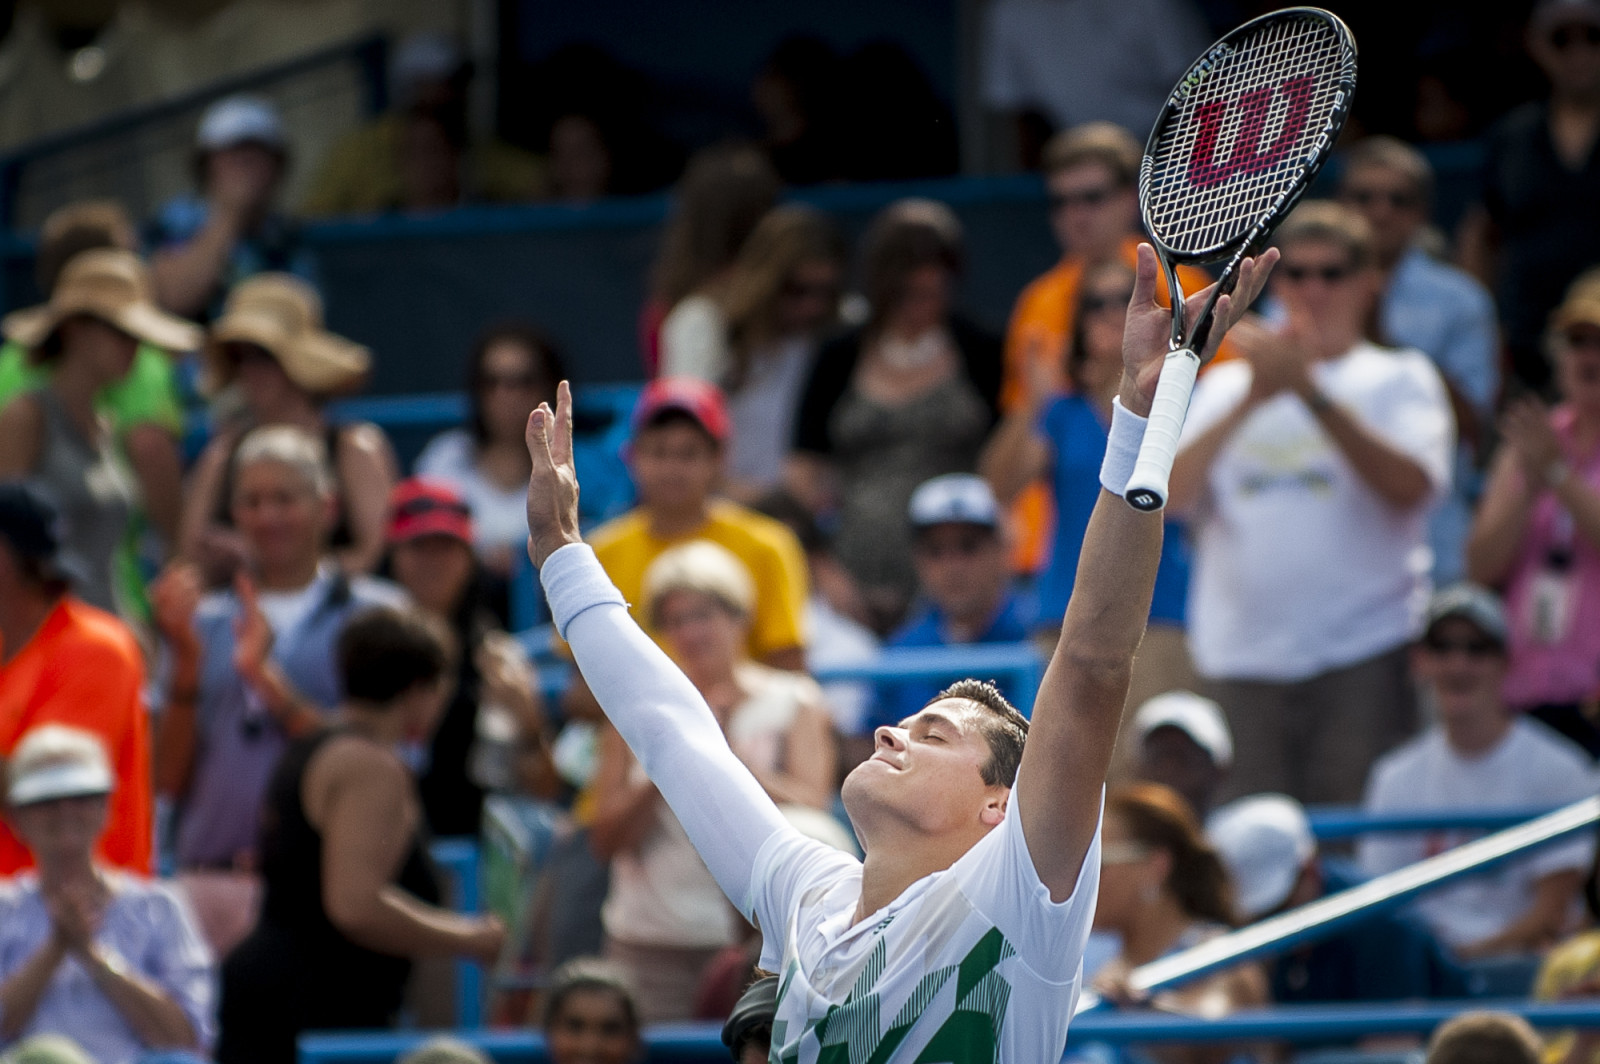 Milos Raonic of Canada celebrates the winning point against Vasek Pospisil of Canada during their finals singles match at the Citi Open ATP tennis tournament in Washington, DC, USA, 3 Aug 2014. Raonic won the men's final 6-1, 6-4.